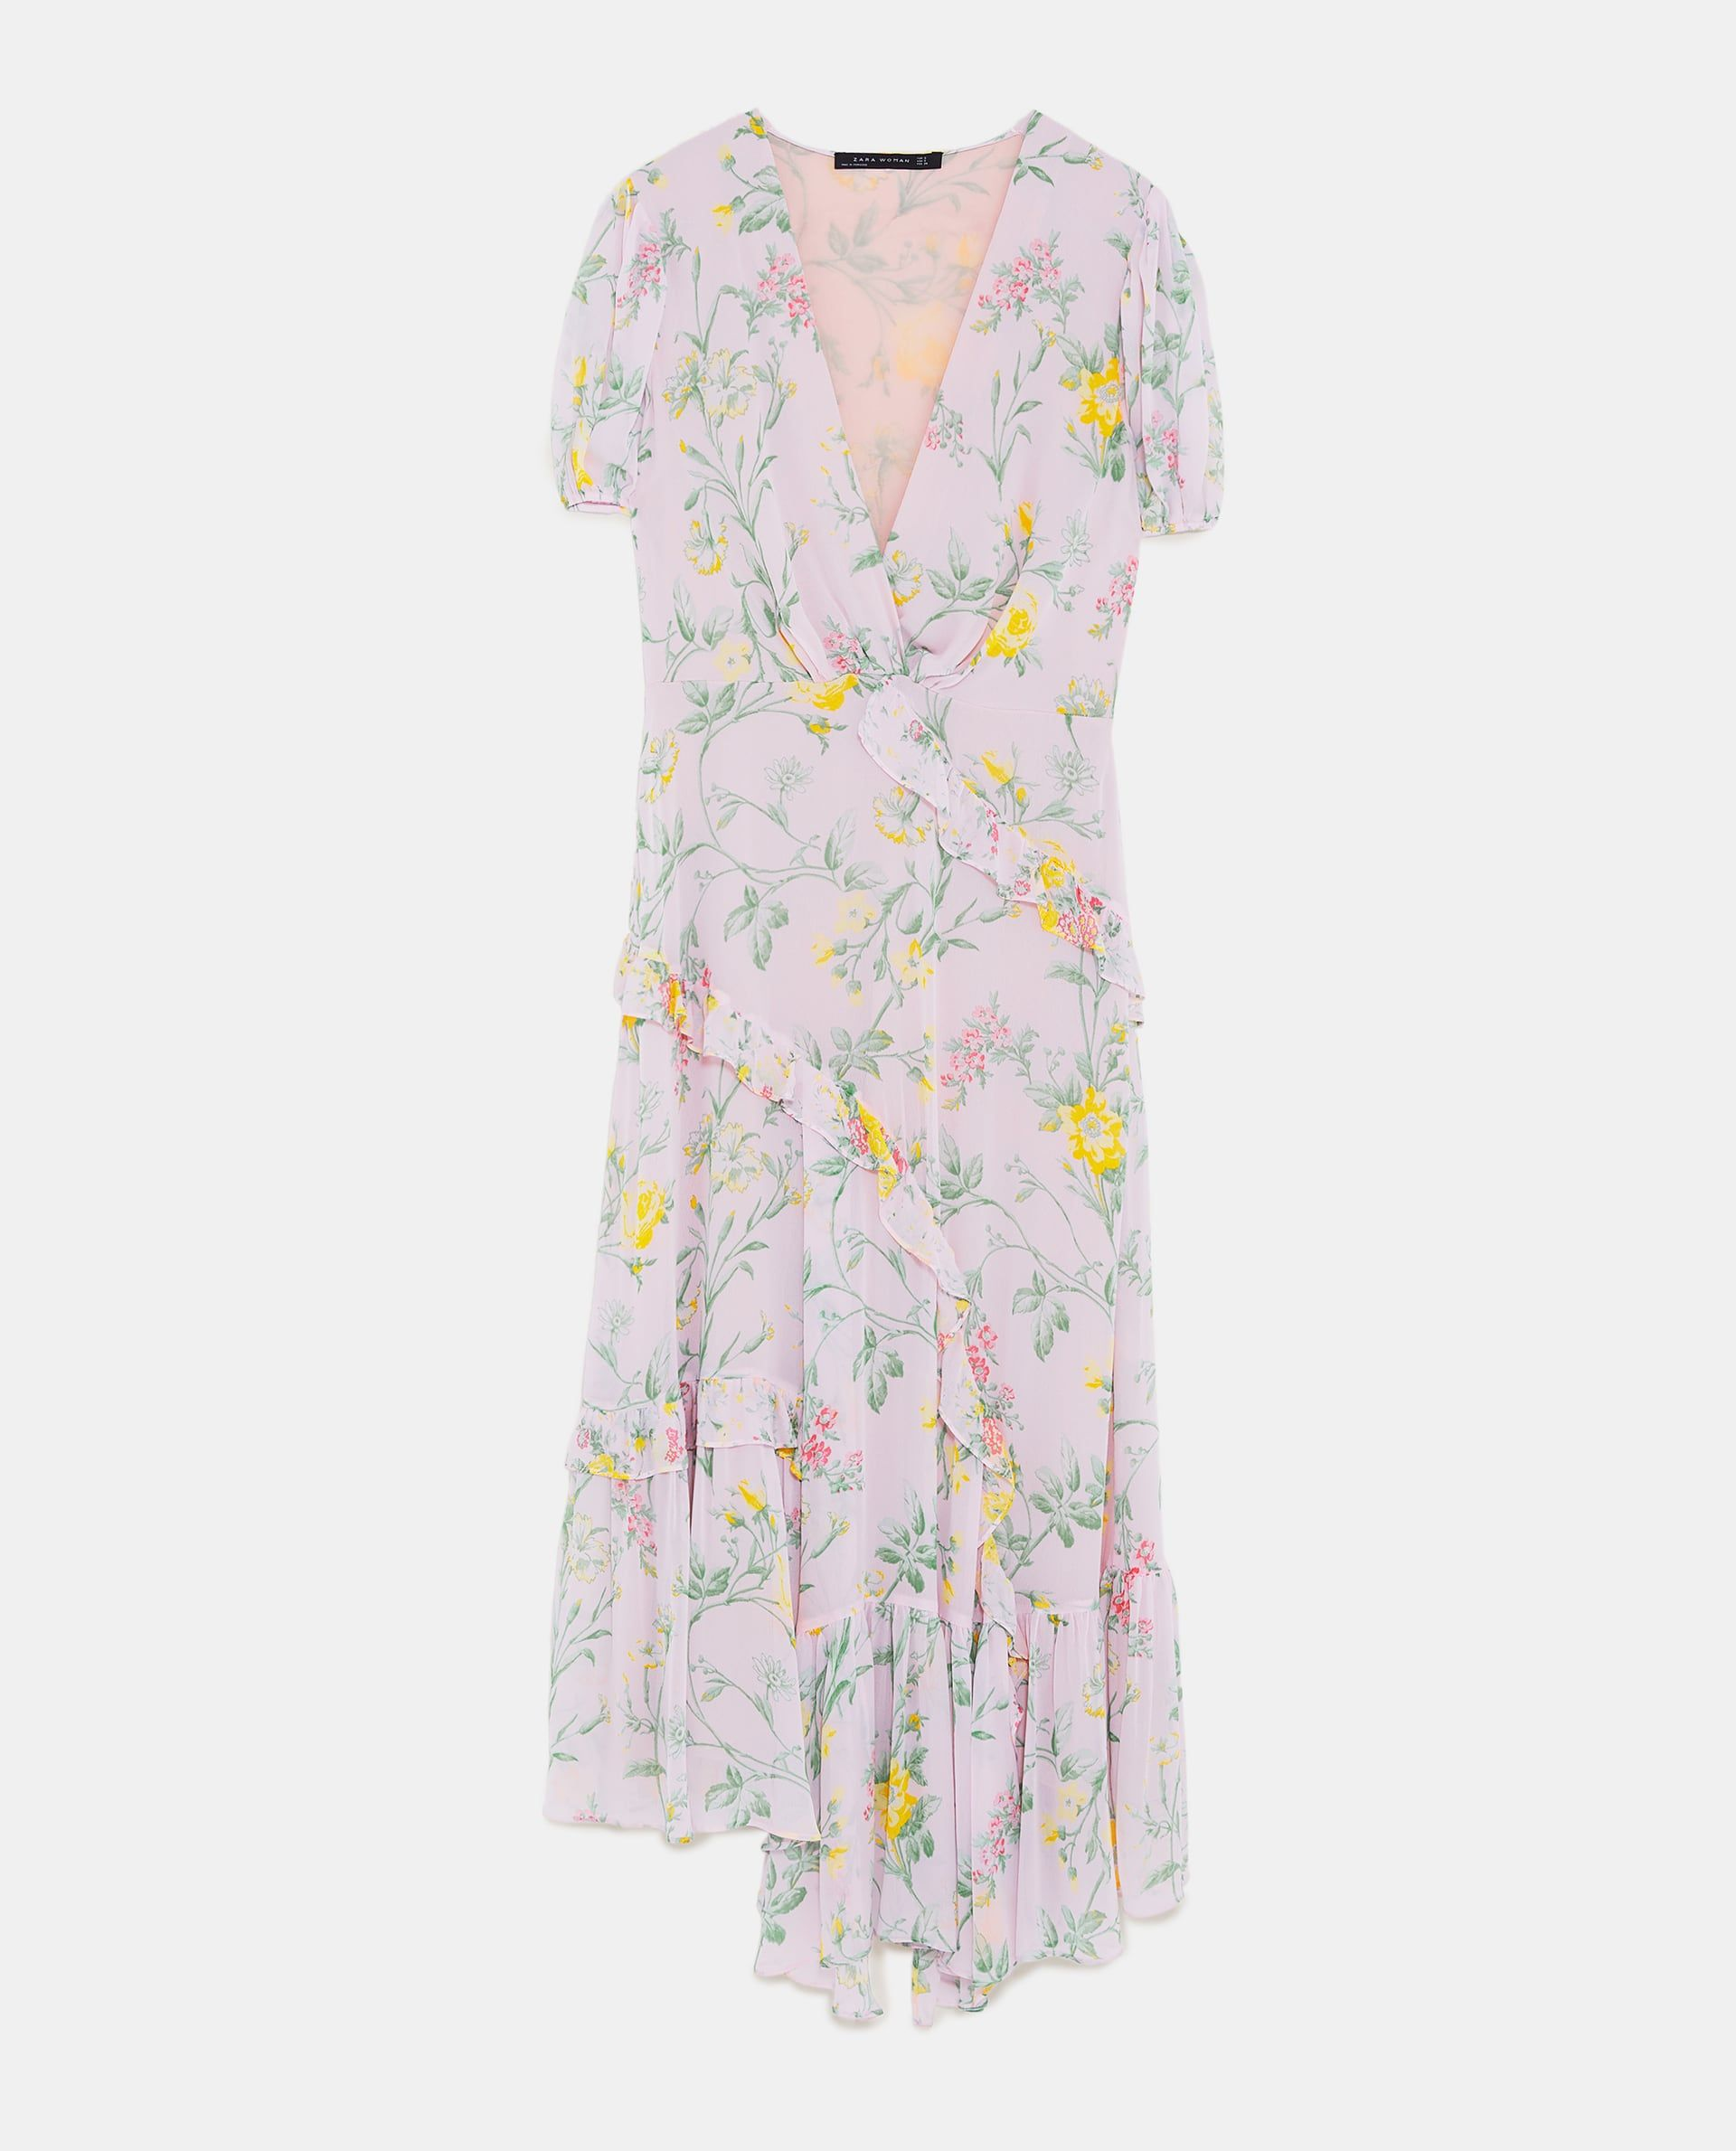 57931fa3 Image 8 of RUFFLED FLORAL PRINT DRESS from Zara Zara Trends, Volants, Ruffle  Dress